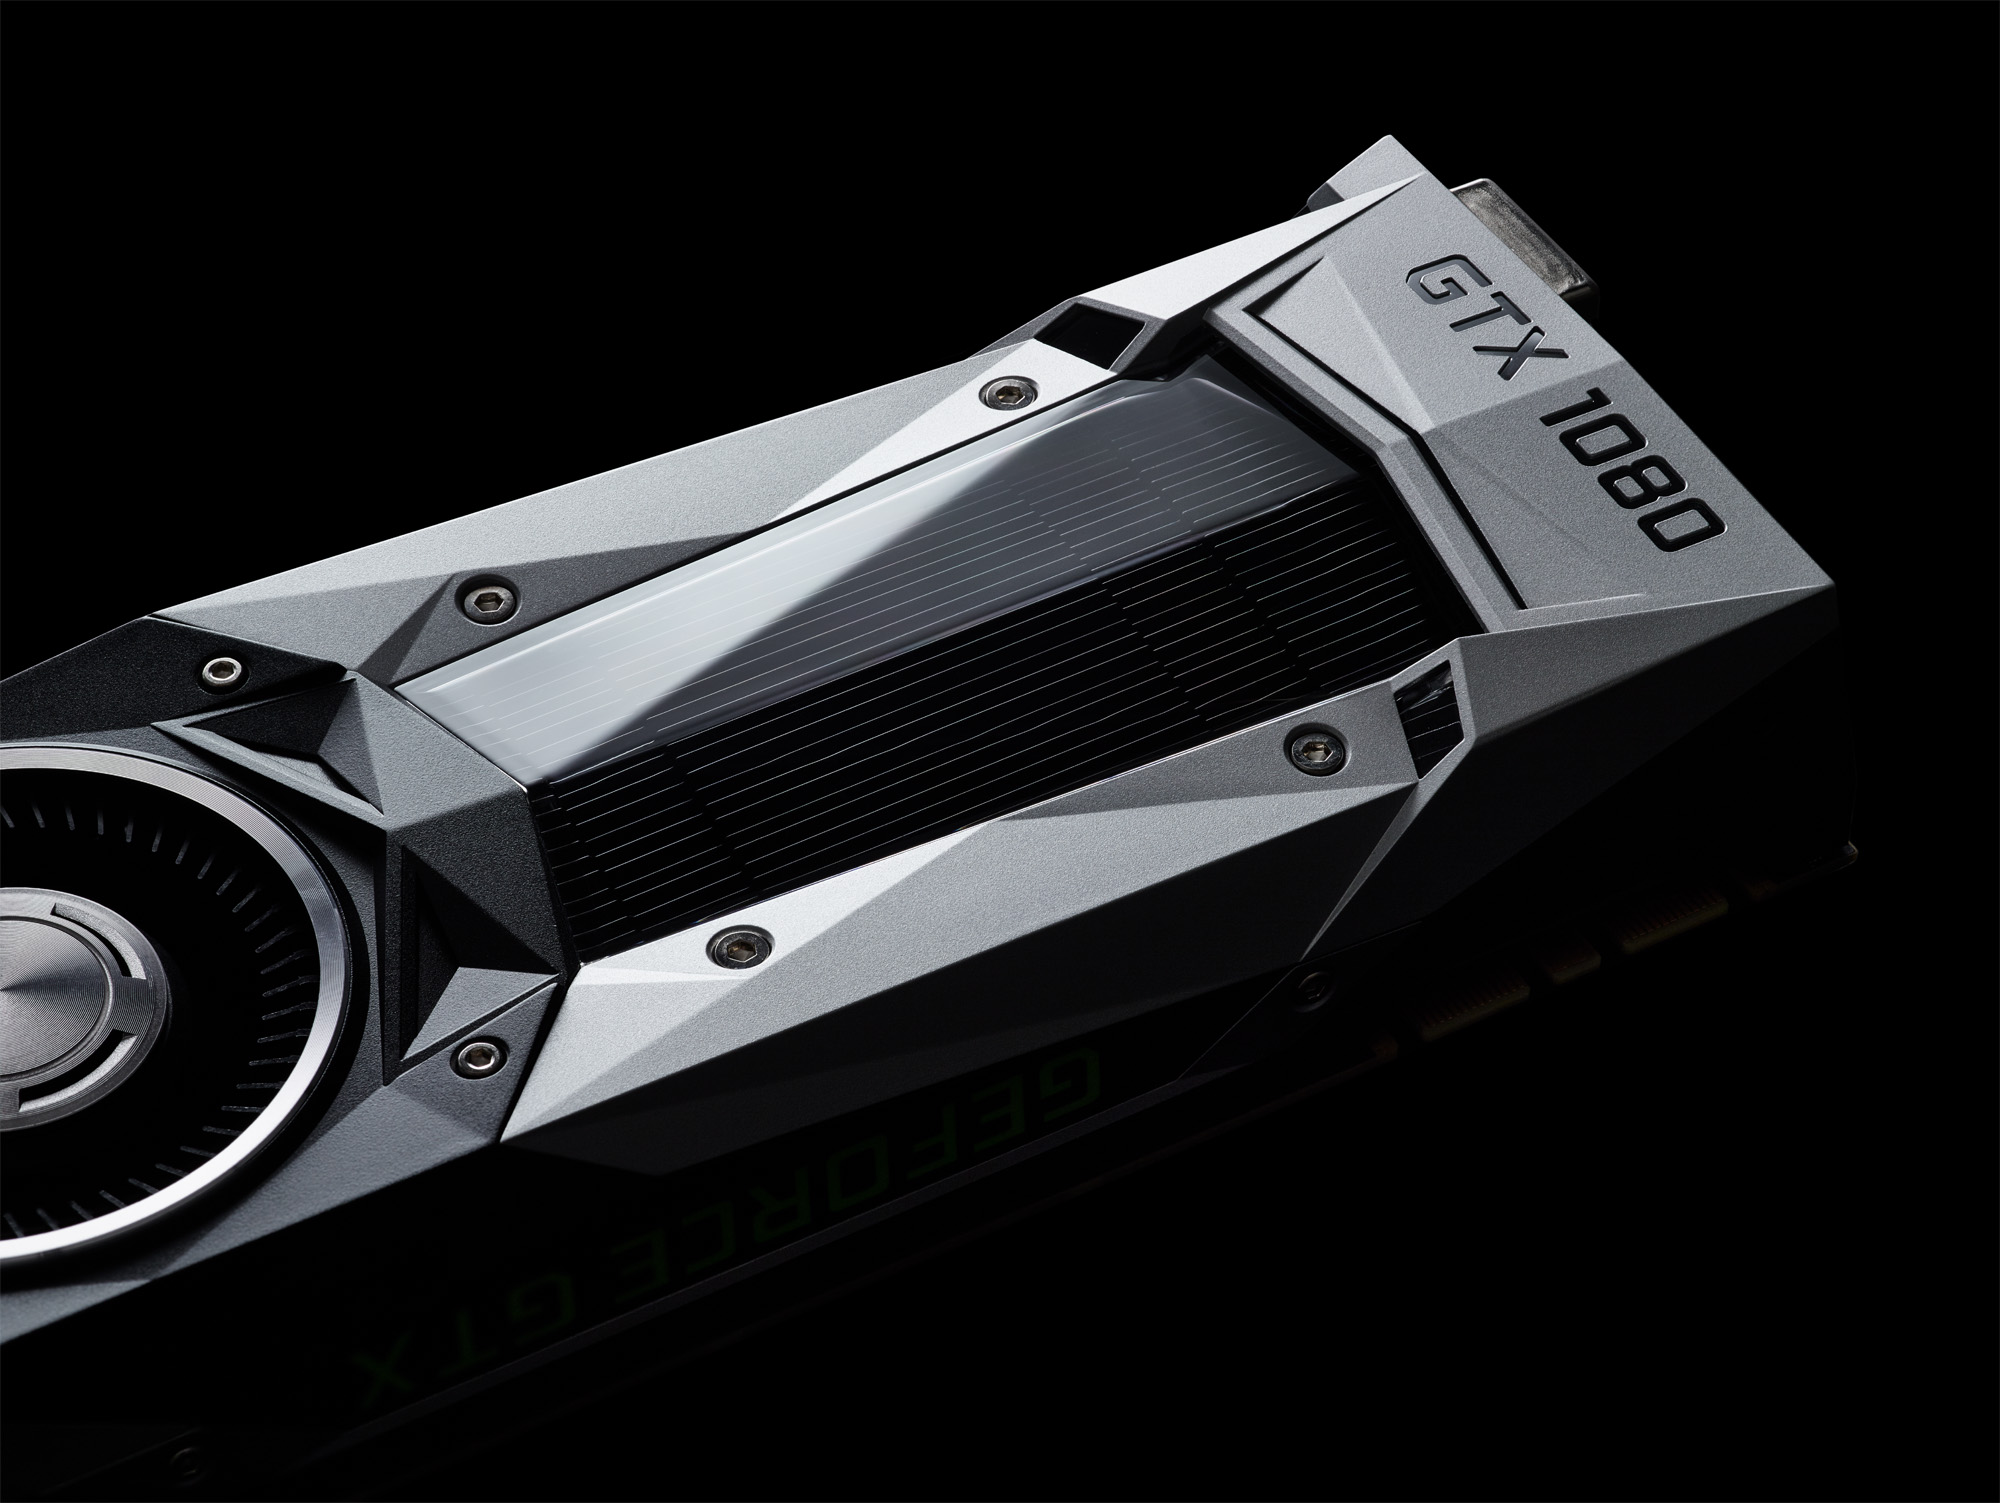 GeForce GTX 1080 is a beautiful powerhouse, but you still may want